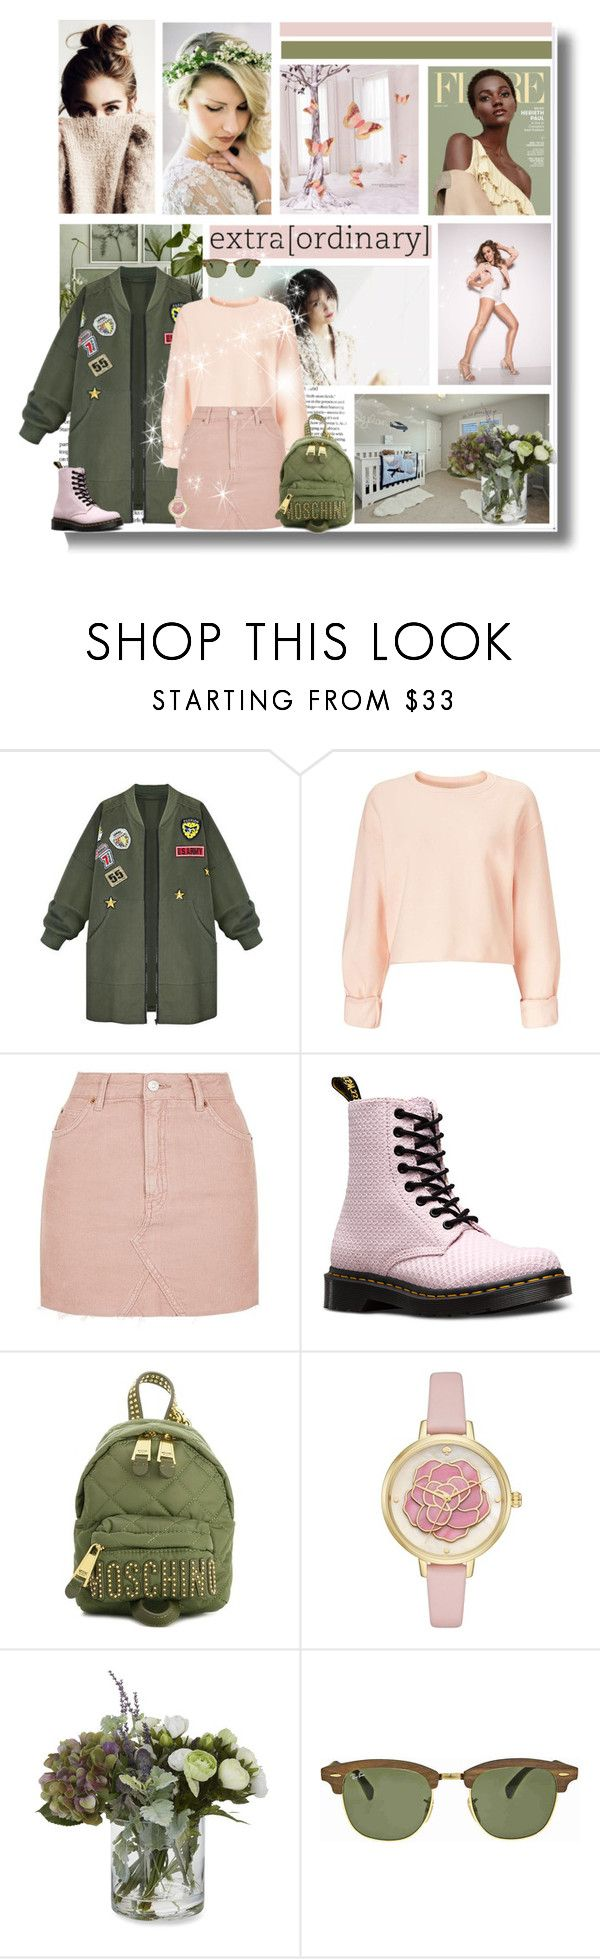 """Spring is nature's way of saying, 'Let's party!"" by kikusek ❤ liked on Polyvore featuring WithChic, Miss Selfridge, Topshop, Dr. Martens, Moschino, Kate Spade, Laura Ashley, Ray-Ban, Spring and Pink"